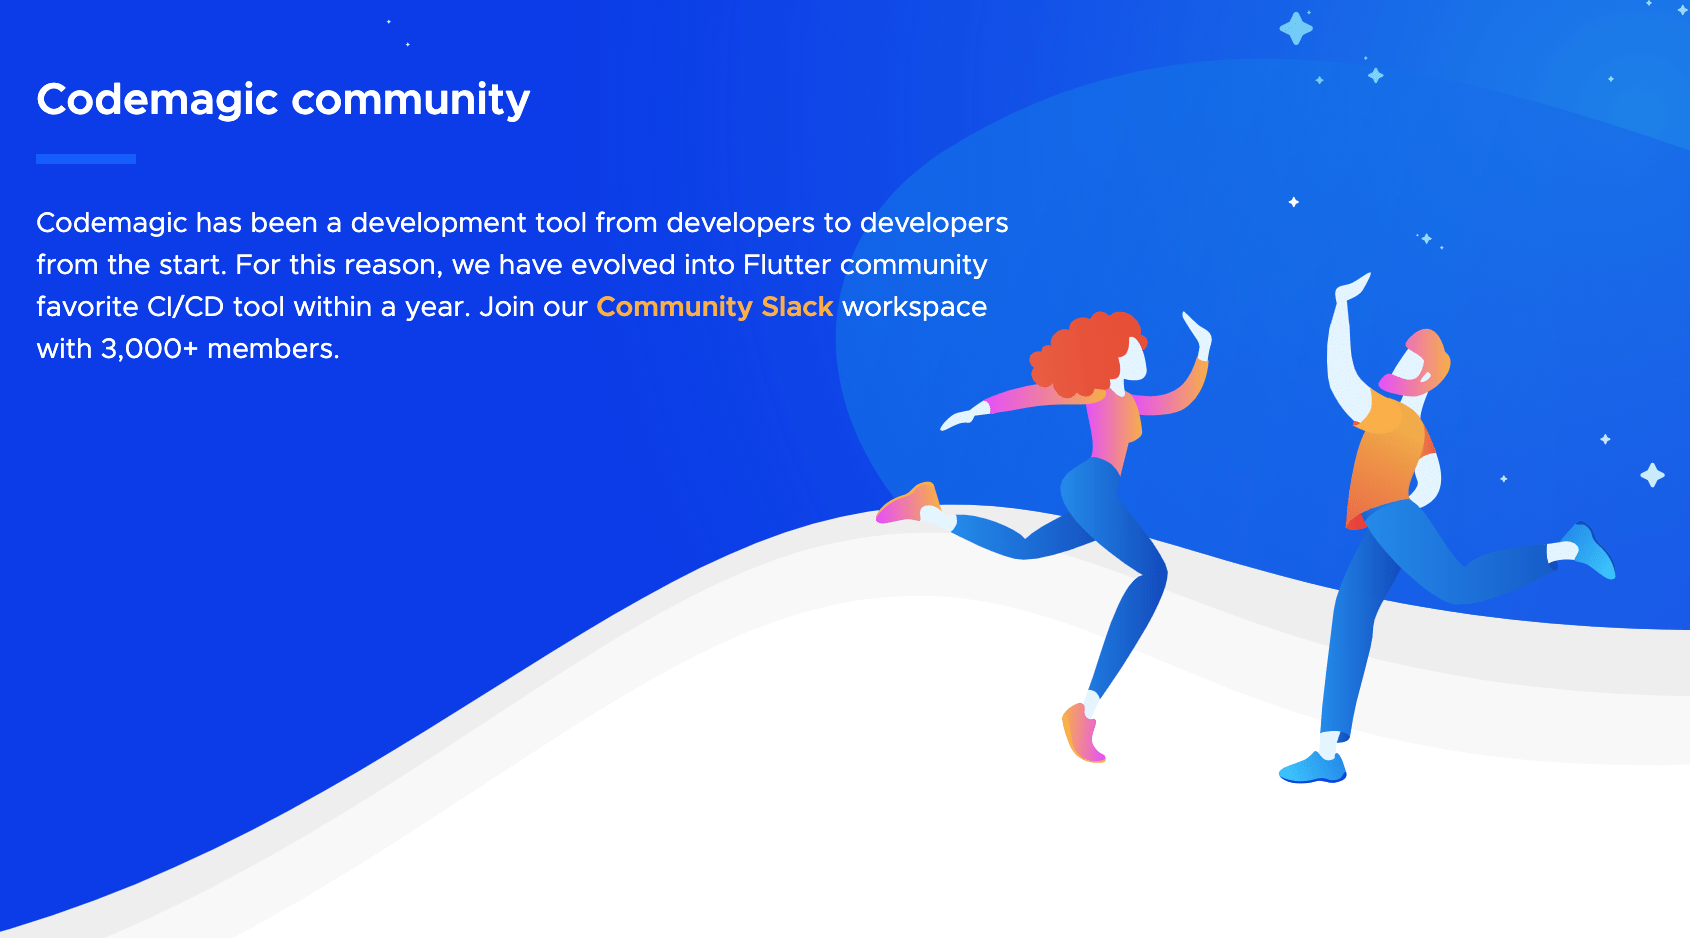 We are a Flutter Community favorite CI/CD tool but not only. Bring your Android, iOS, Ionic, Cordova, React Native and Flutter projects to Codemagic and ship quality apps with ease.